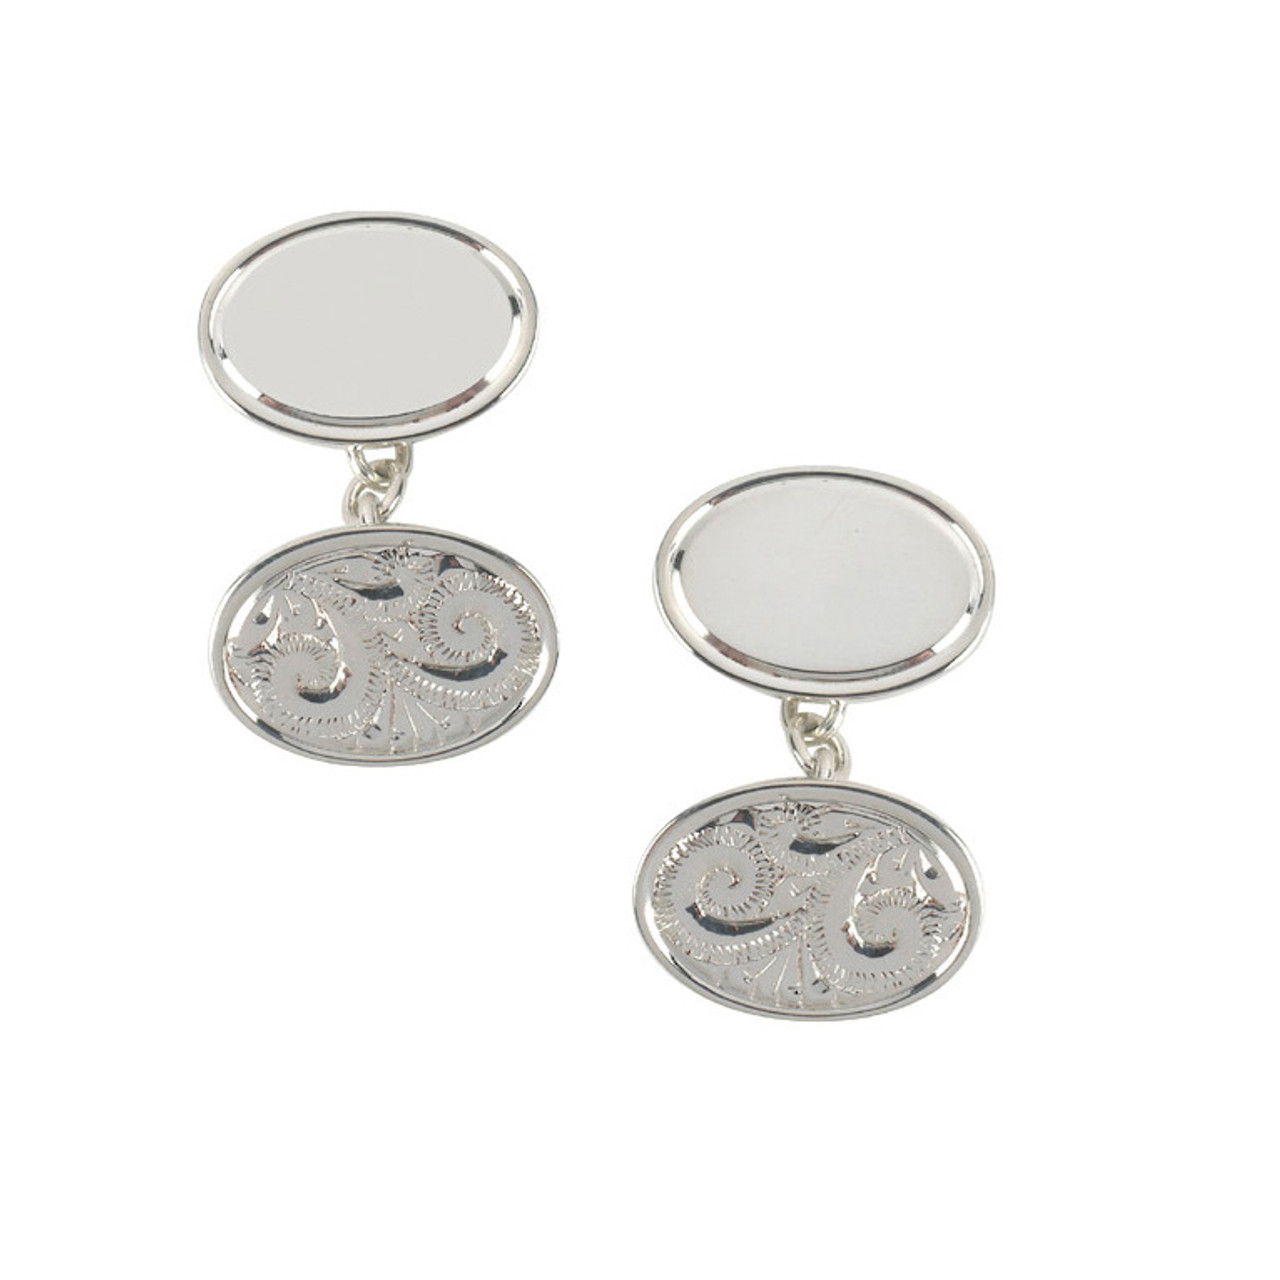 Silver Hand-Engraved Oval double Cufflinks